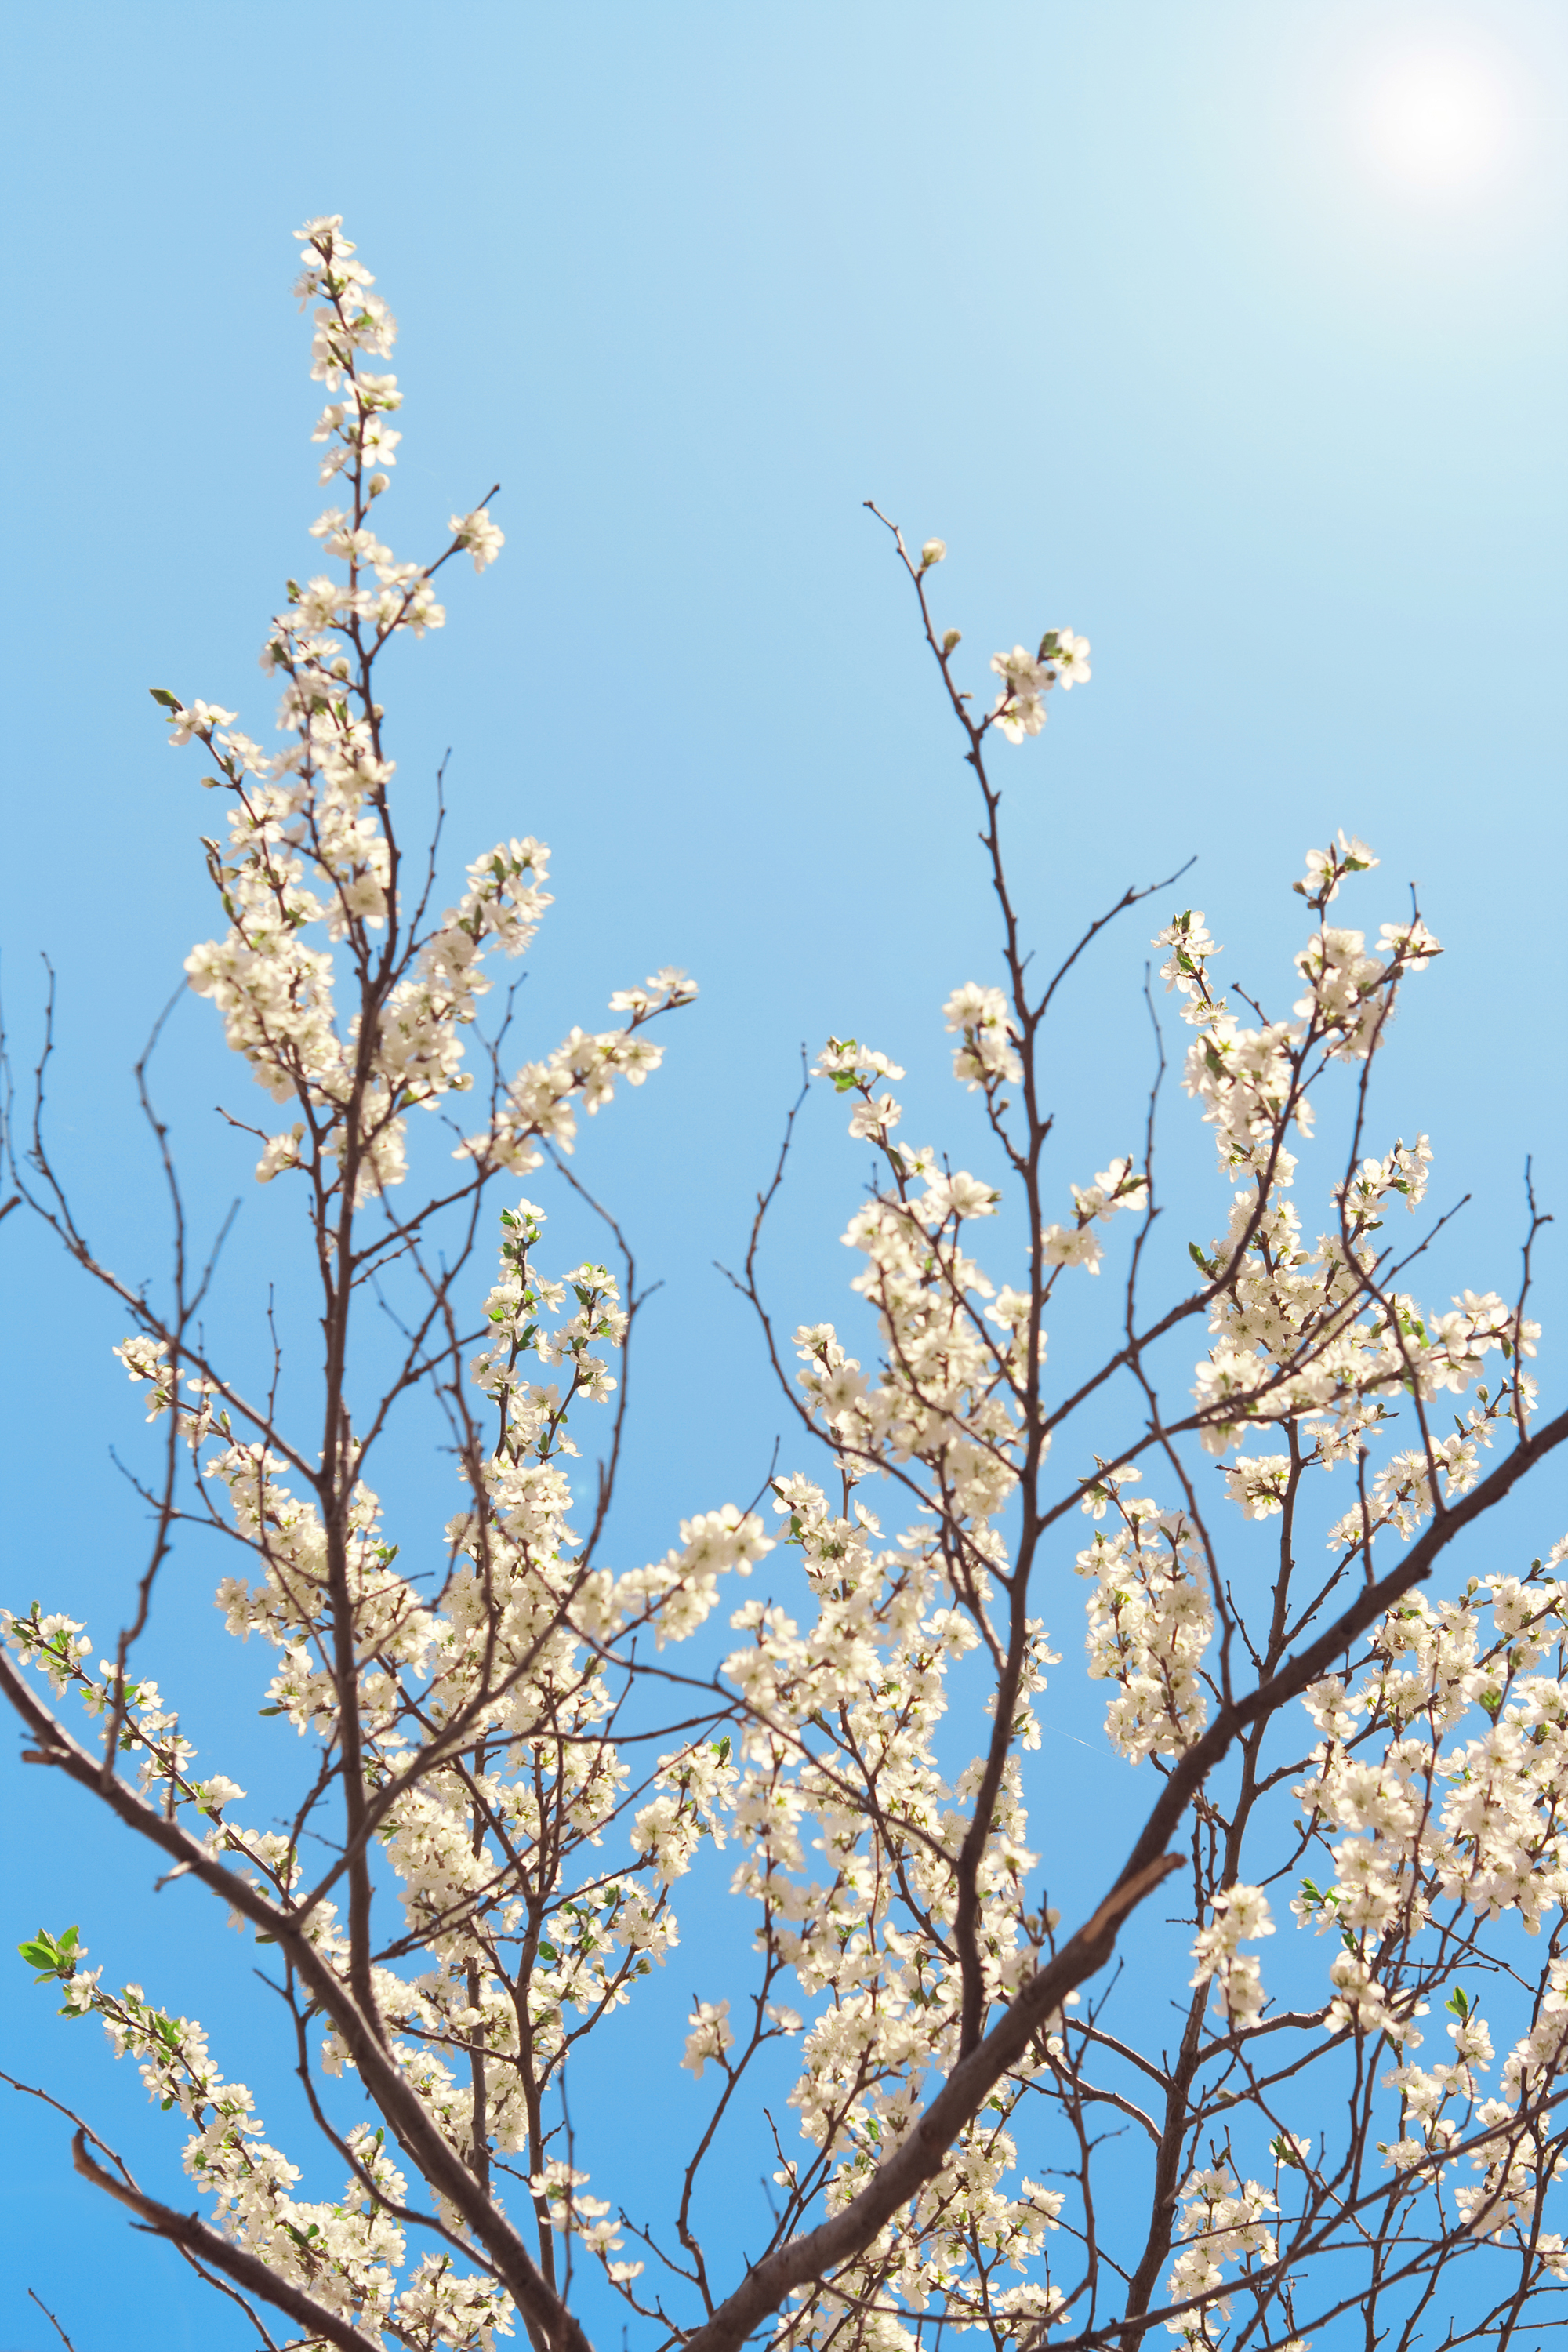 blooming flowers branch, Outdoor, Growth, Japan, Japanese, HQ Photo